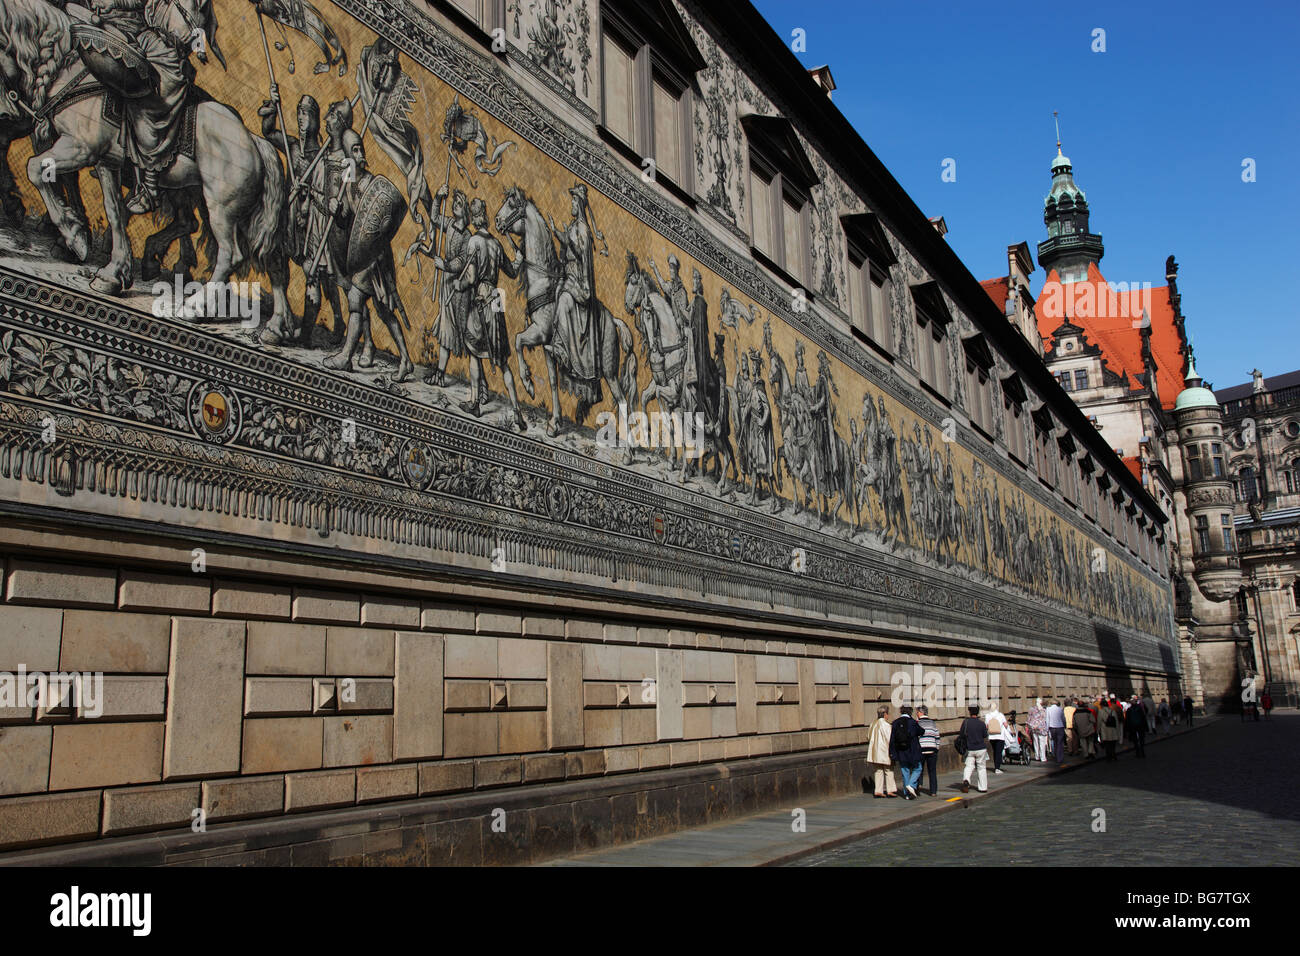 Germany, Saxony, Dresden, Old Town, Procession of Princes, Meissen Porcelain Tiles, Tourists - Stock Image